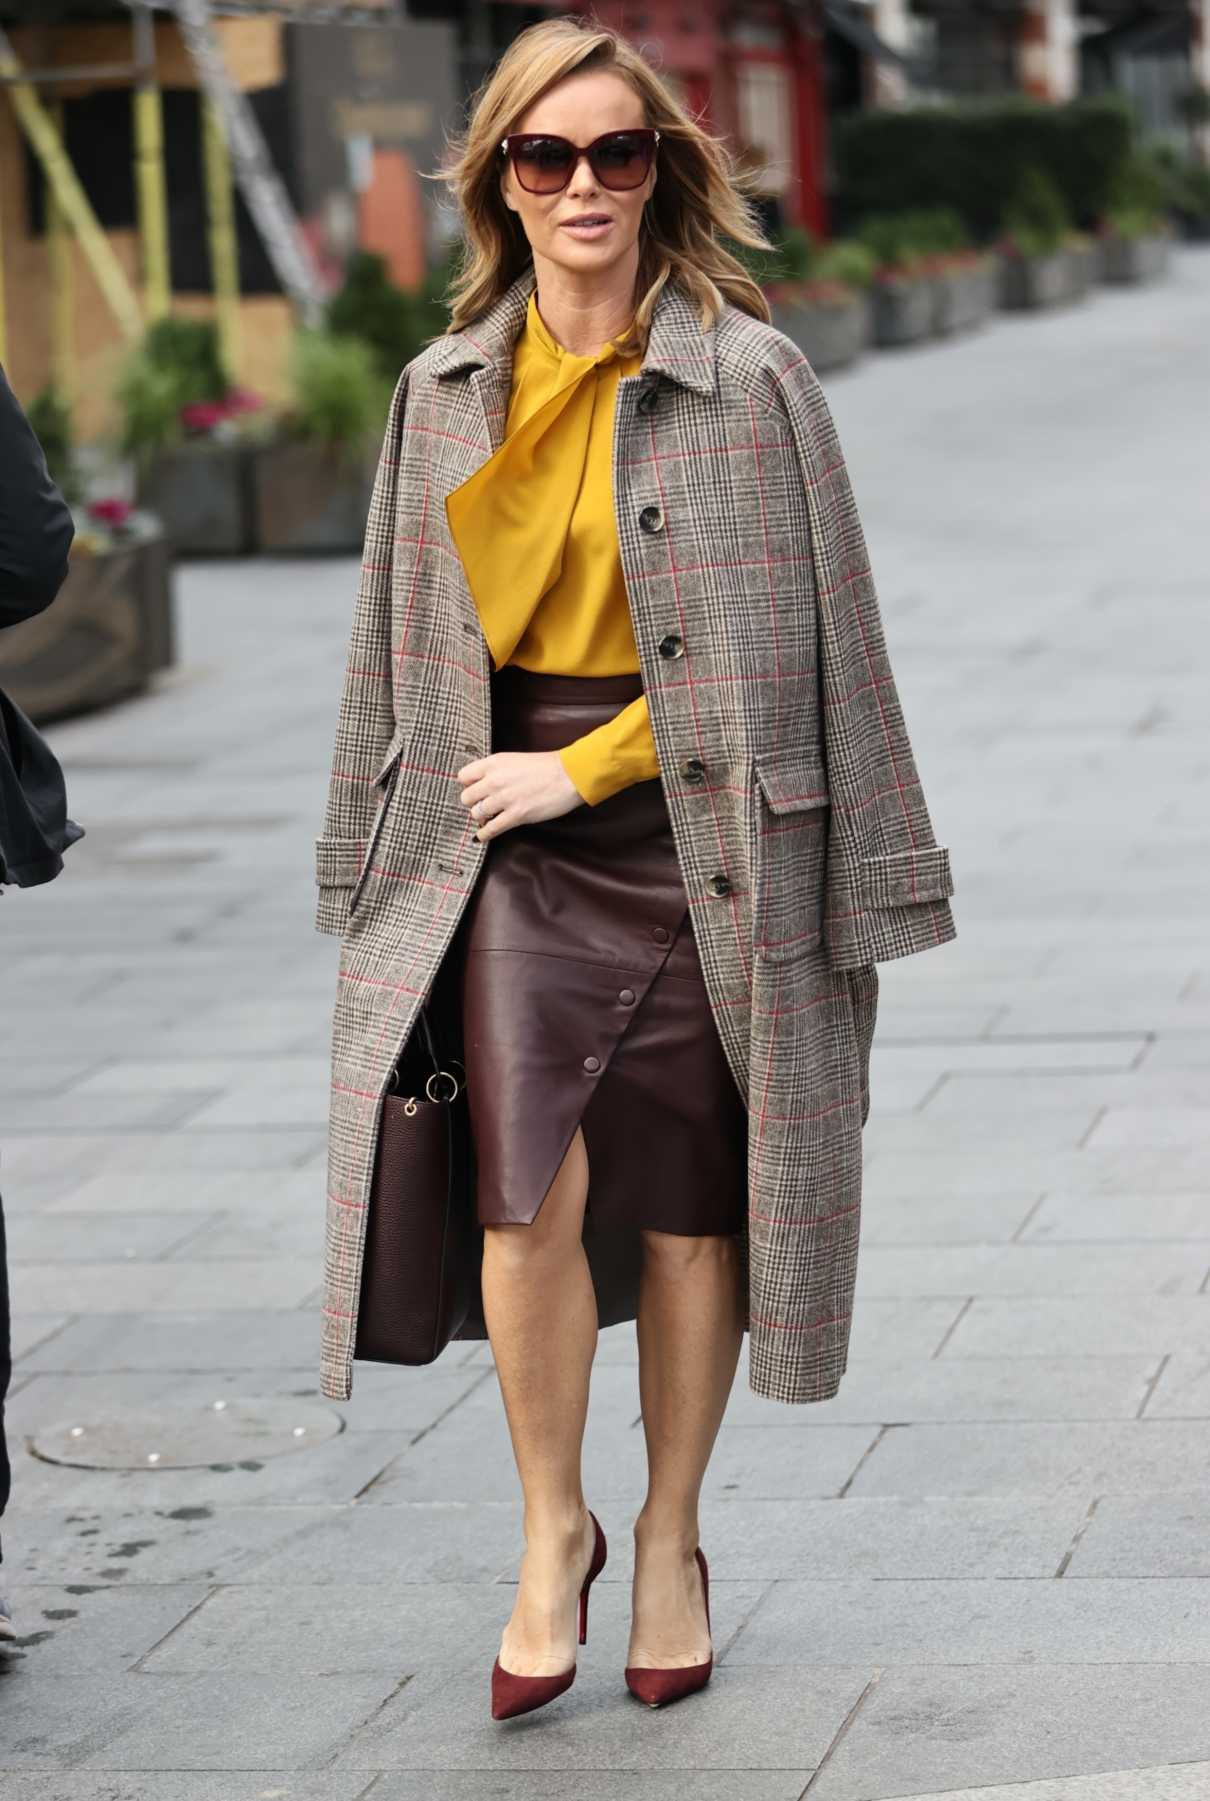 Amanda Holden in a Yellow Blouse